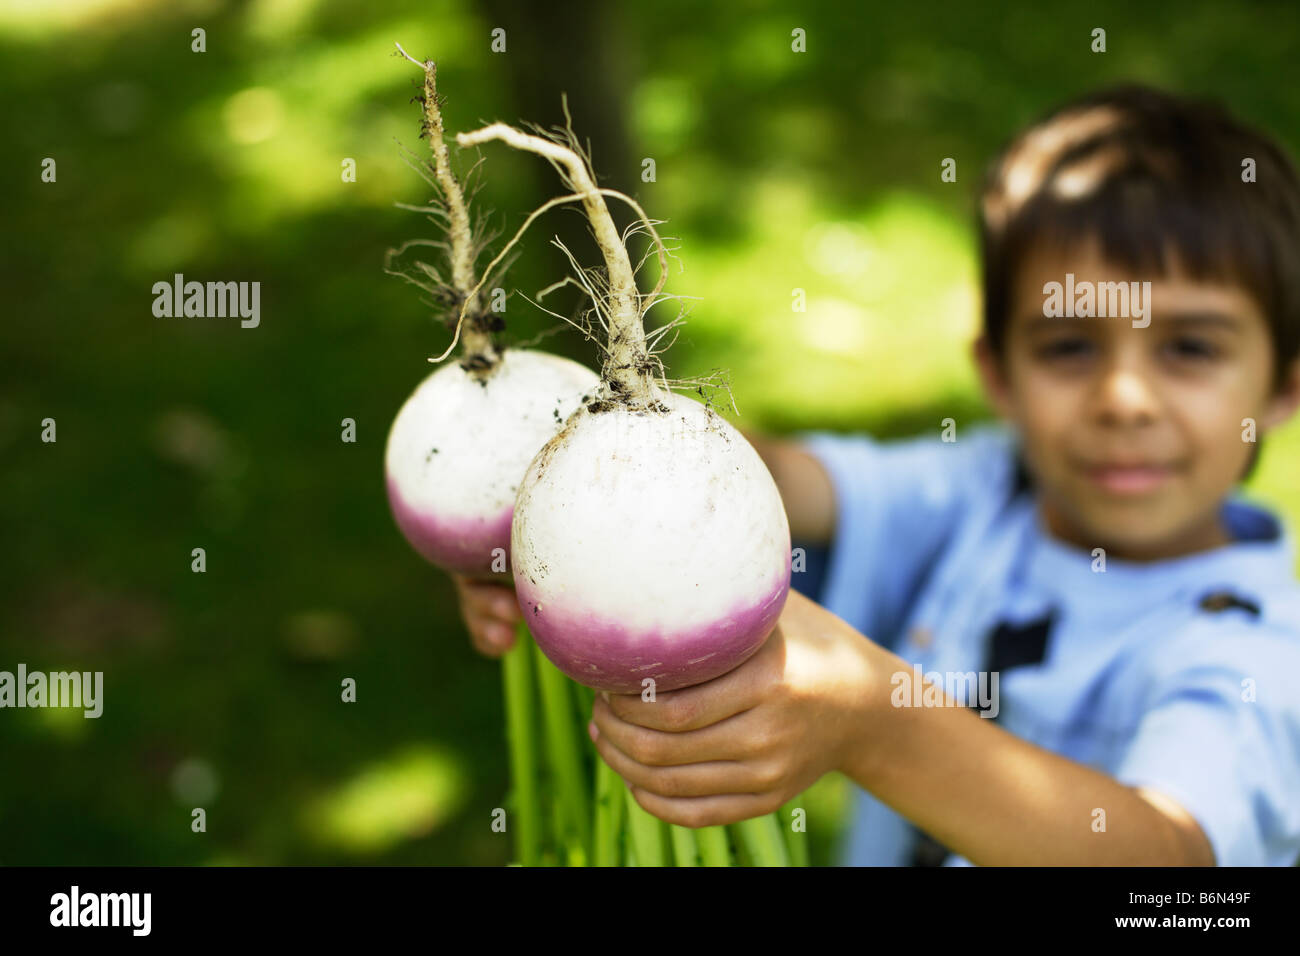 Six year old boy holds two organic home grown turnips - Stock Image